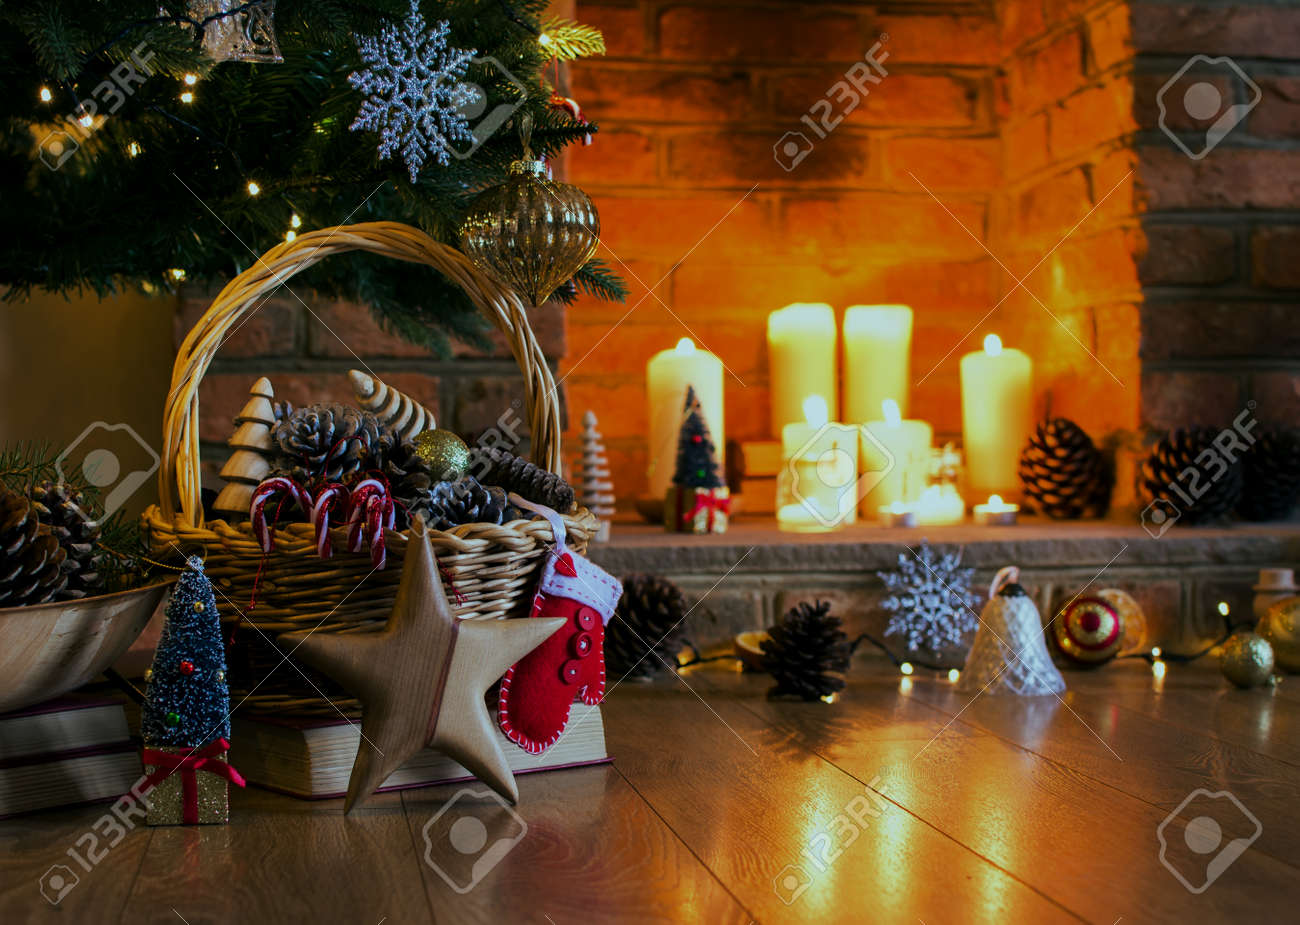 Christmas Decorations In The Basket In Front Of The Fireplace